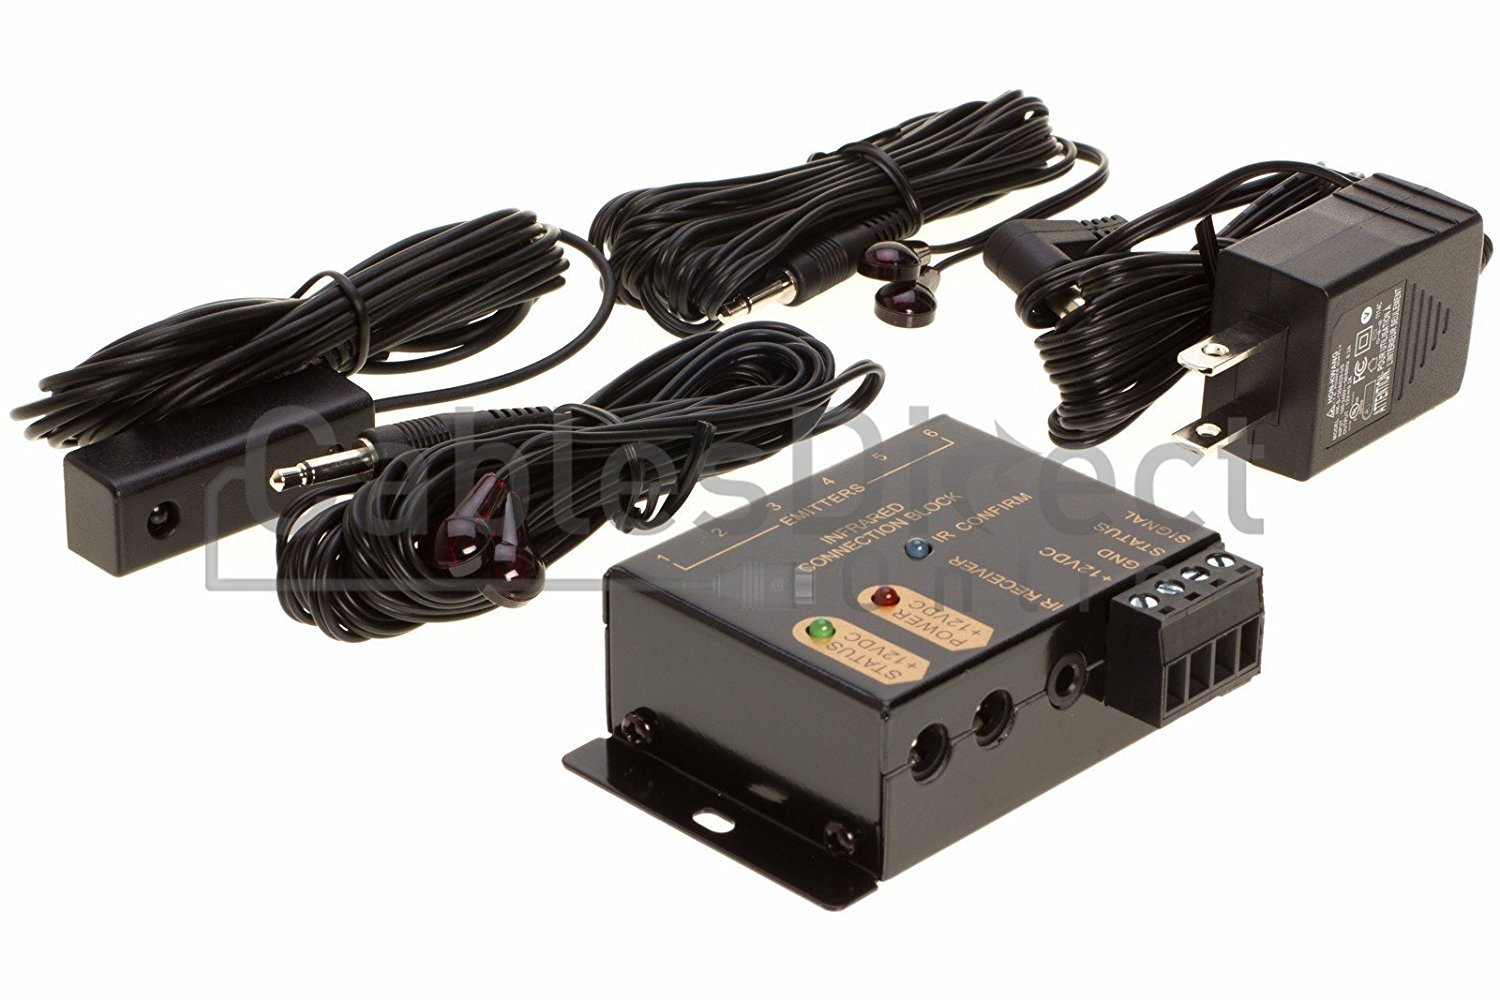 IR Repeater System - Hidden IR Control System for Home Theater